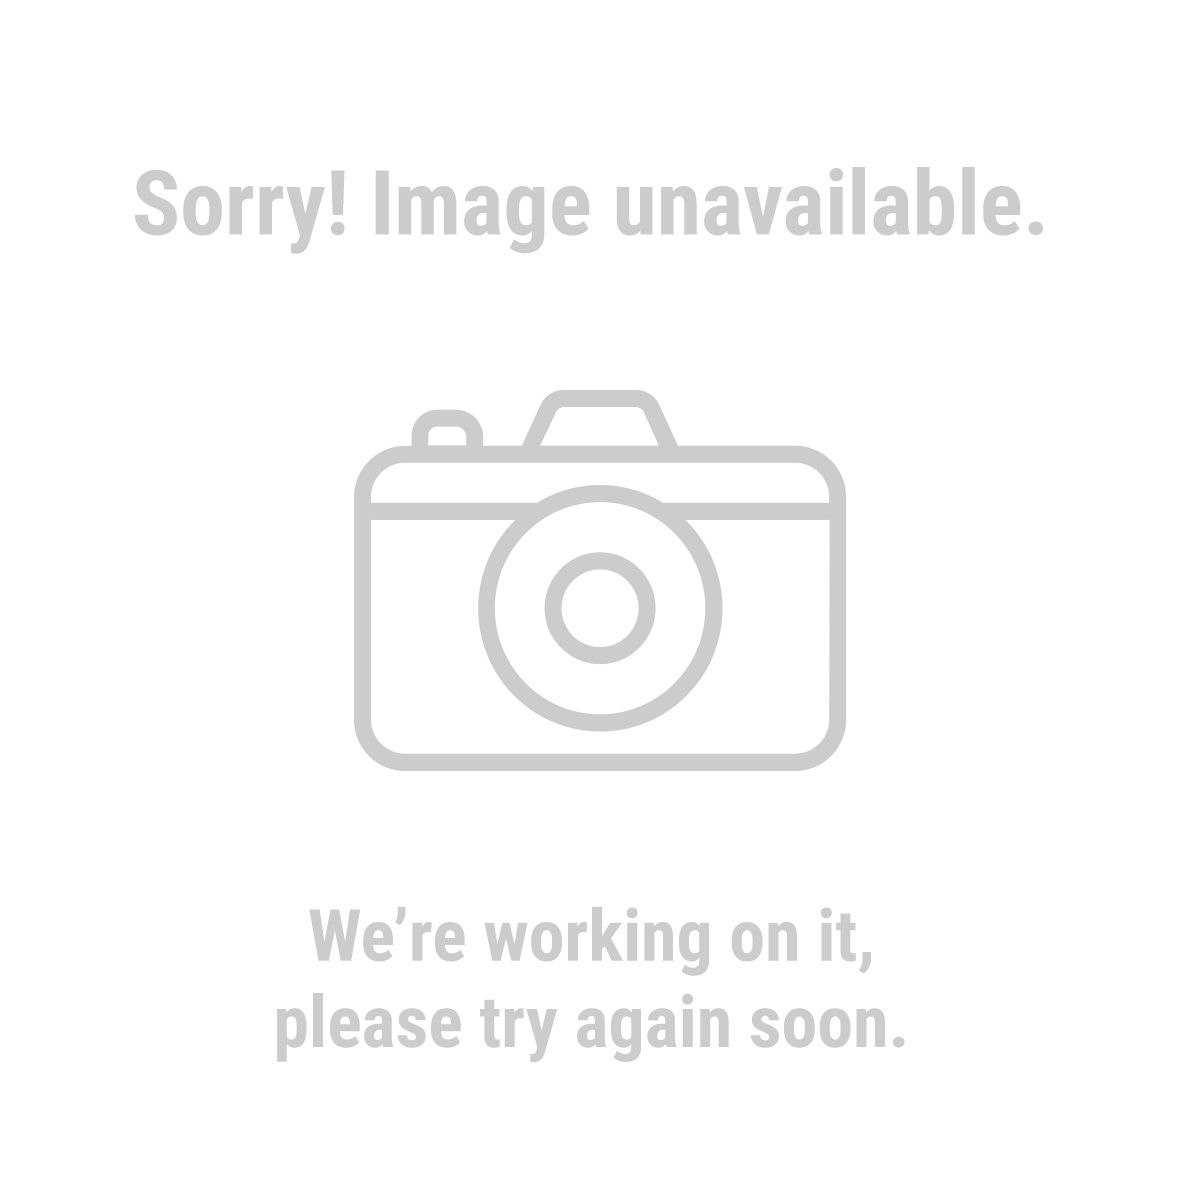 Chicago Electric Power Tools 63023 3 in. Heavy Duty Electric Cut-Off Tool